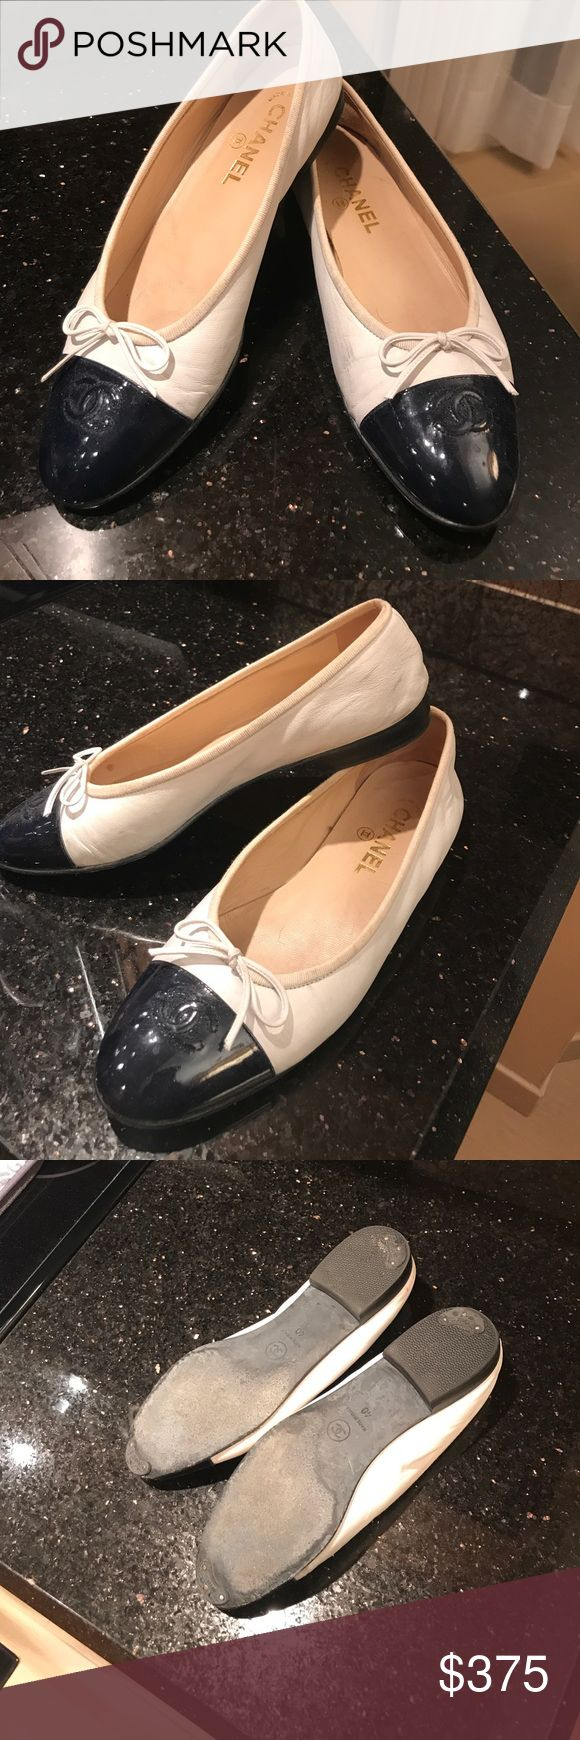 Chanel White and Navy Patent Tip Ballet Flat 40/9 The classic flat. Nice condition. Bottom has light wear and taps are there for protection. A few minor scuffs but polish can make them perfect. Gorgeous shoes CHANEL Shoes Flats & Loafers